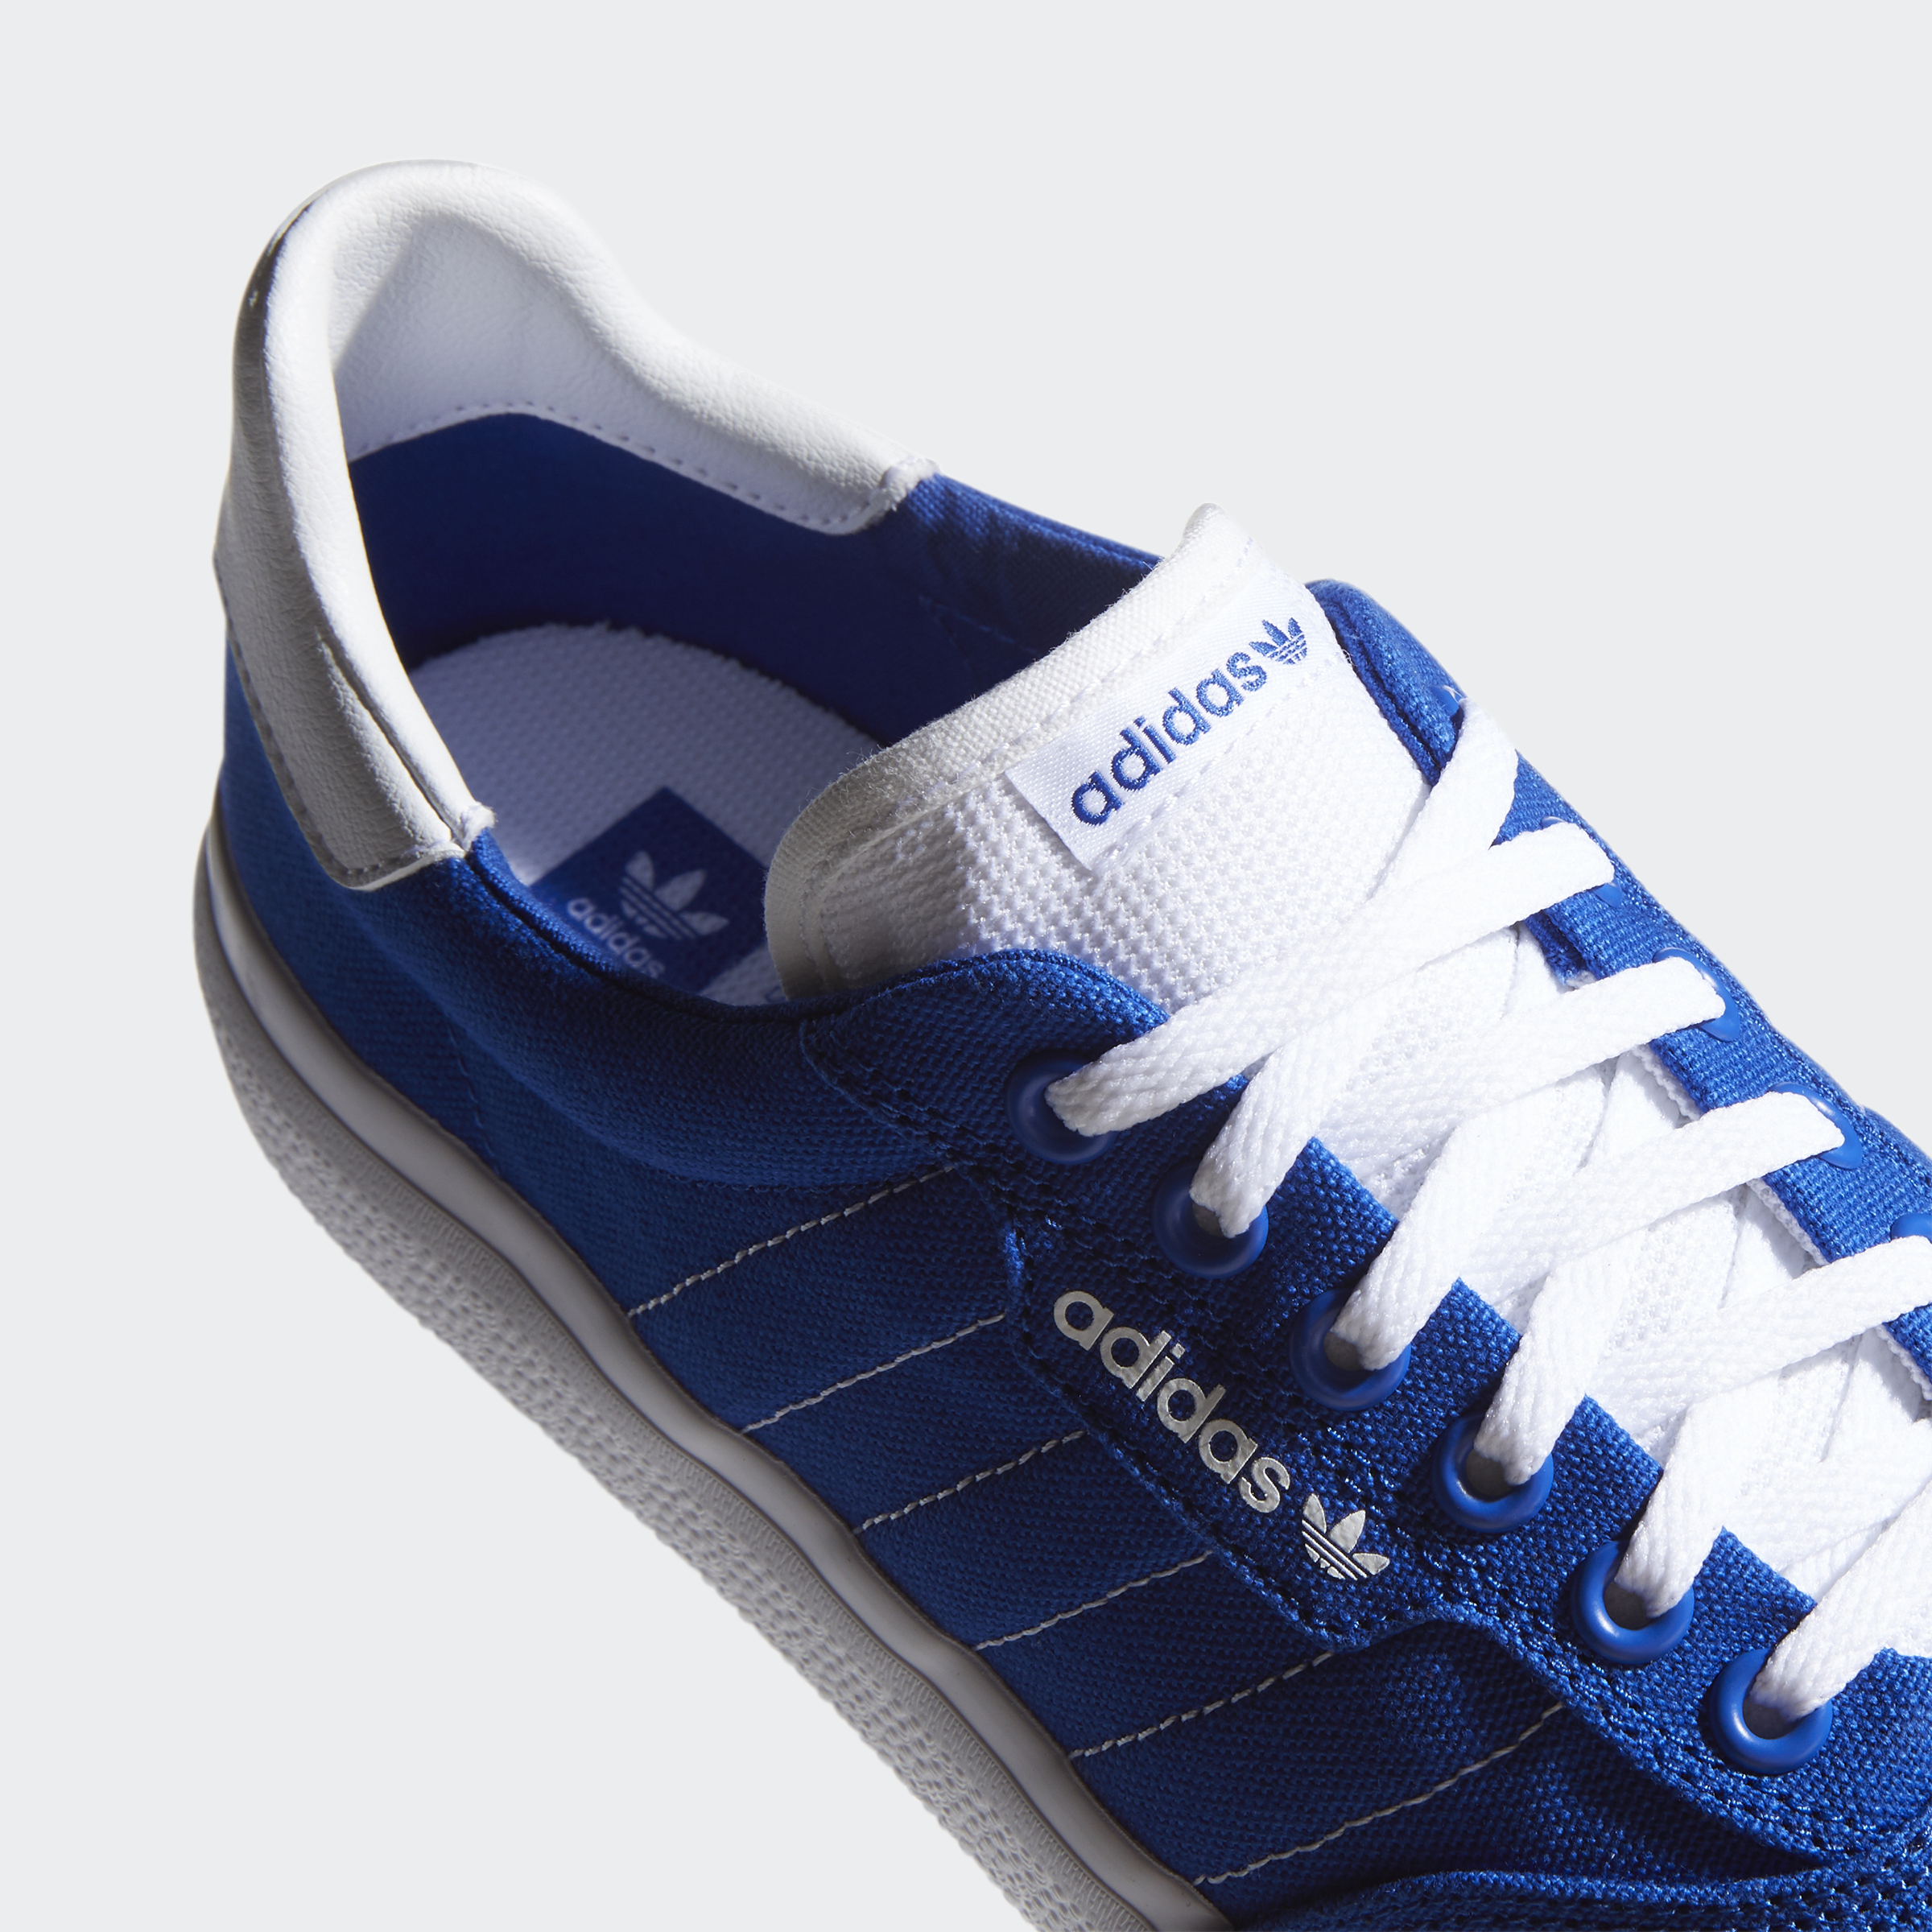 adidas-3MC-Shoes-Athletic-amp-Sneakers miniature 35